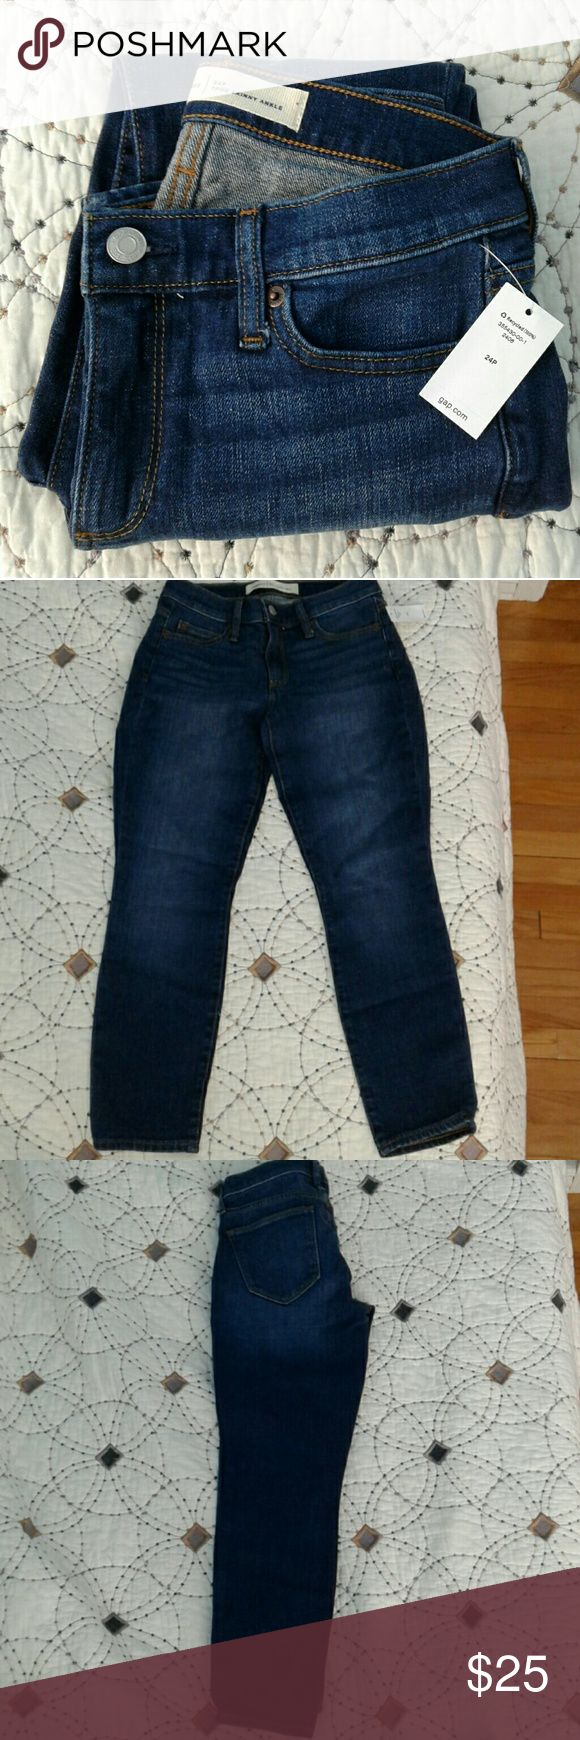 Gap Skinny Ankle jeans 24P NWT comfortable, just didn't happen to fit me. GAP Jeans Ankle & Cropped